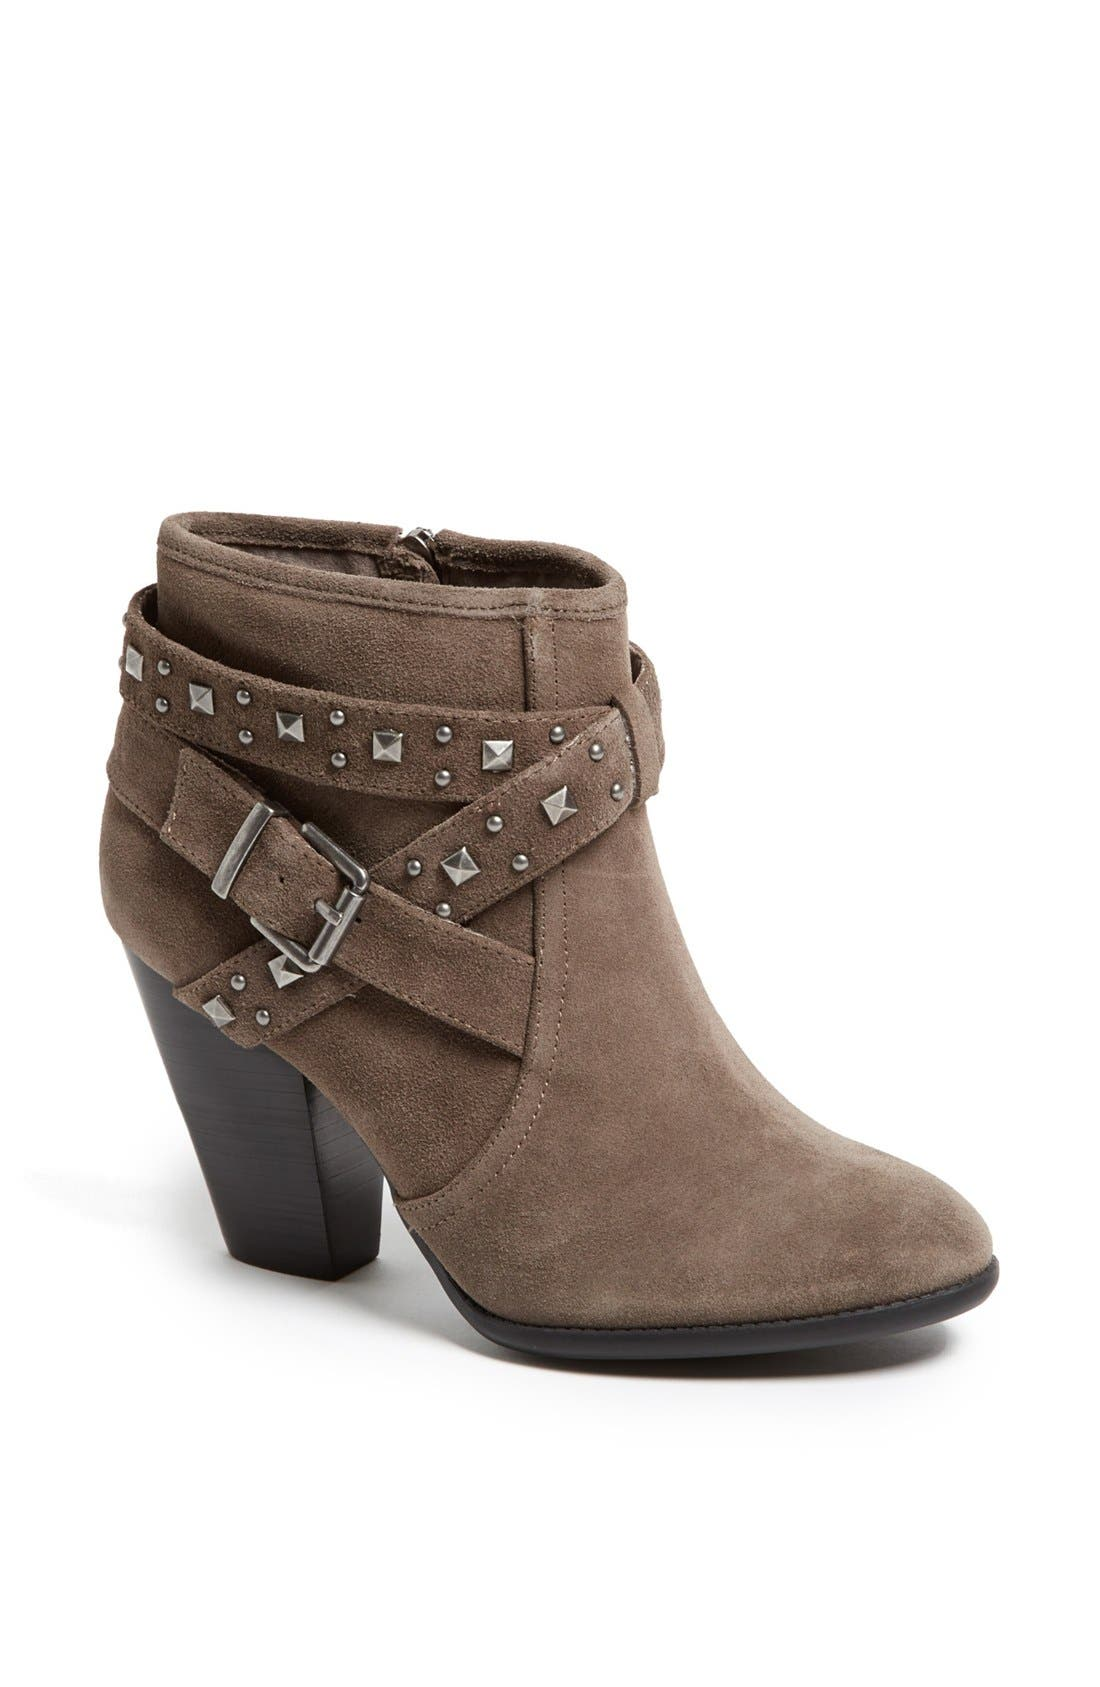 Main Image - Sole Society 'Kita' Bootie